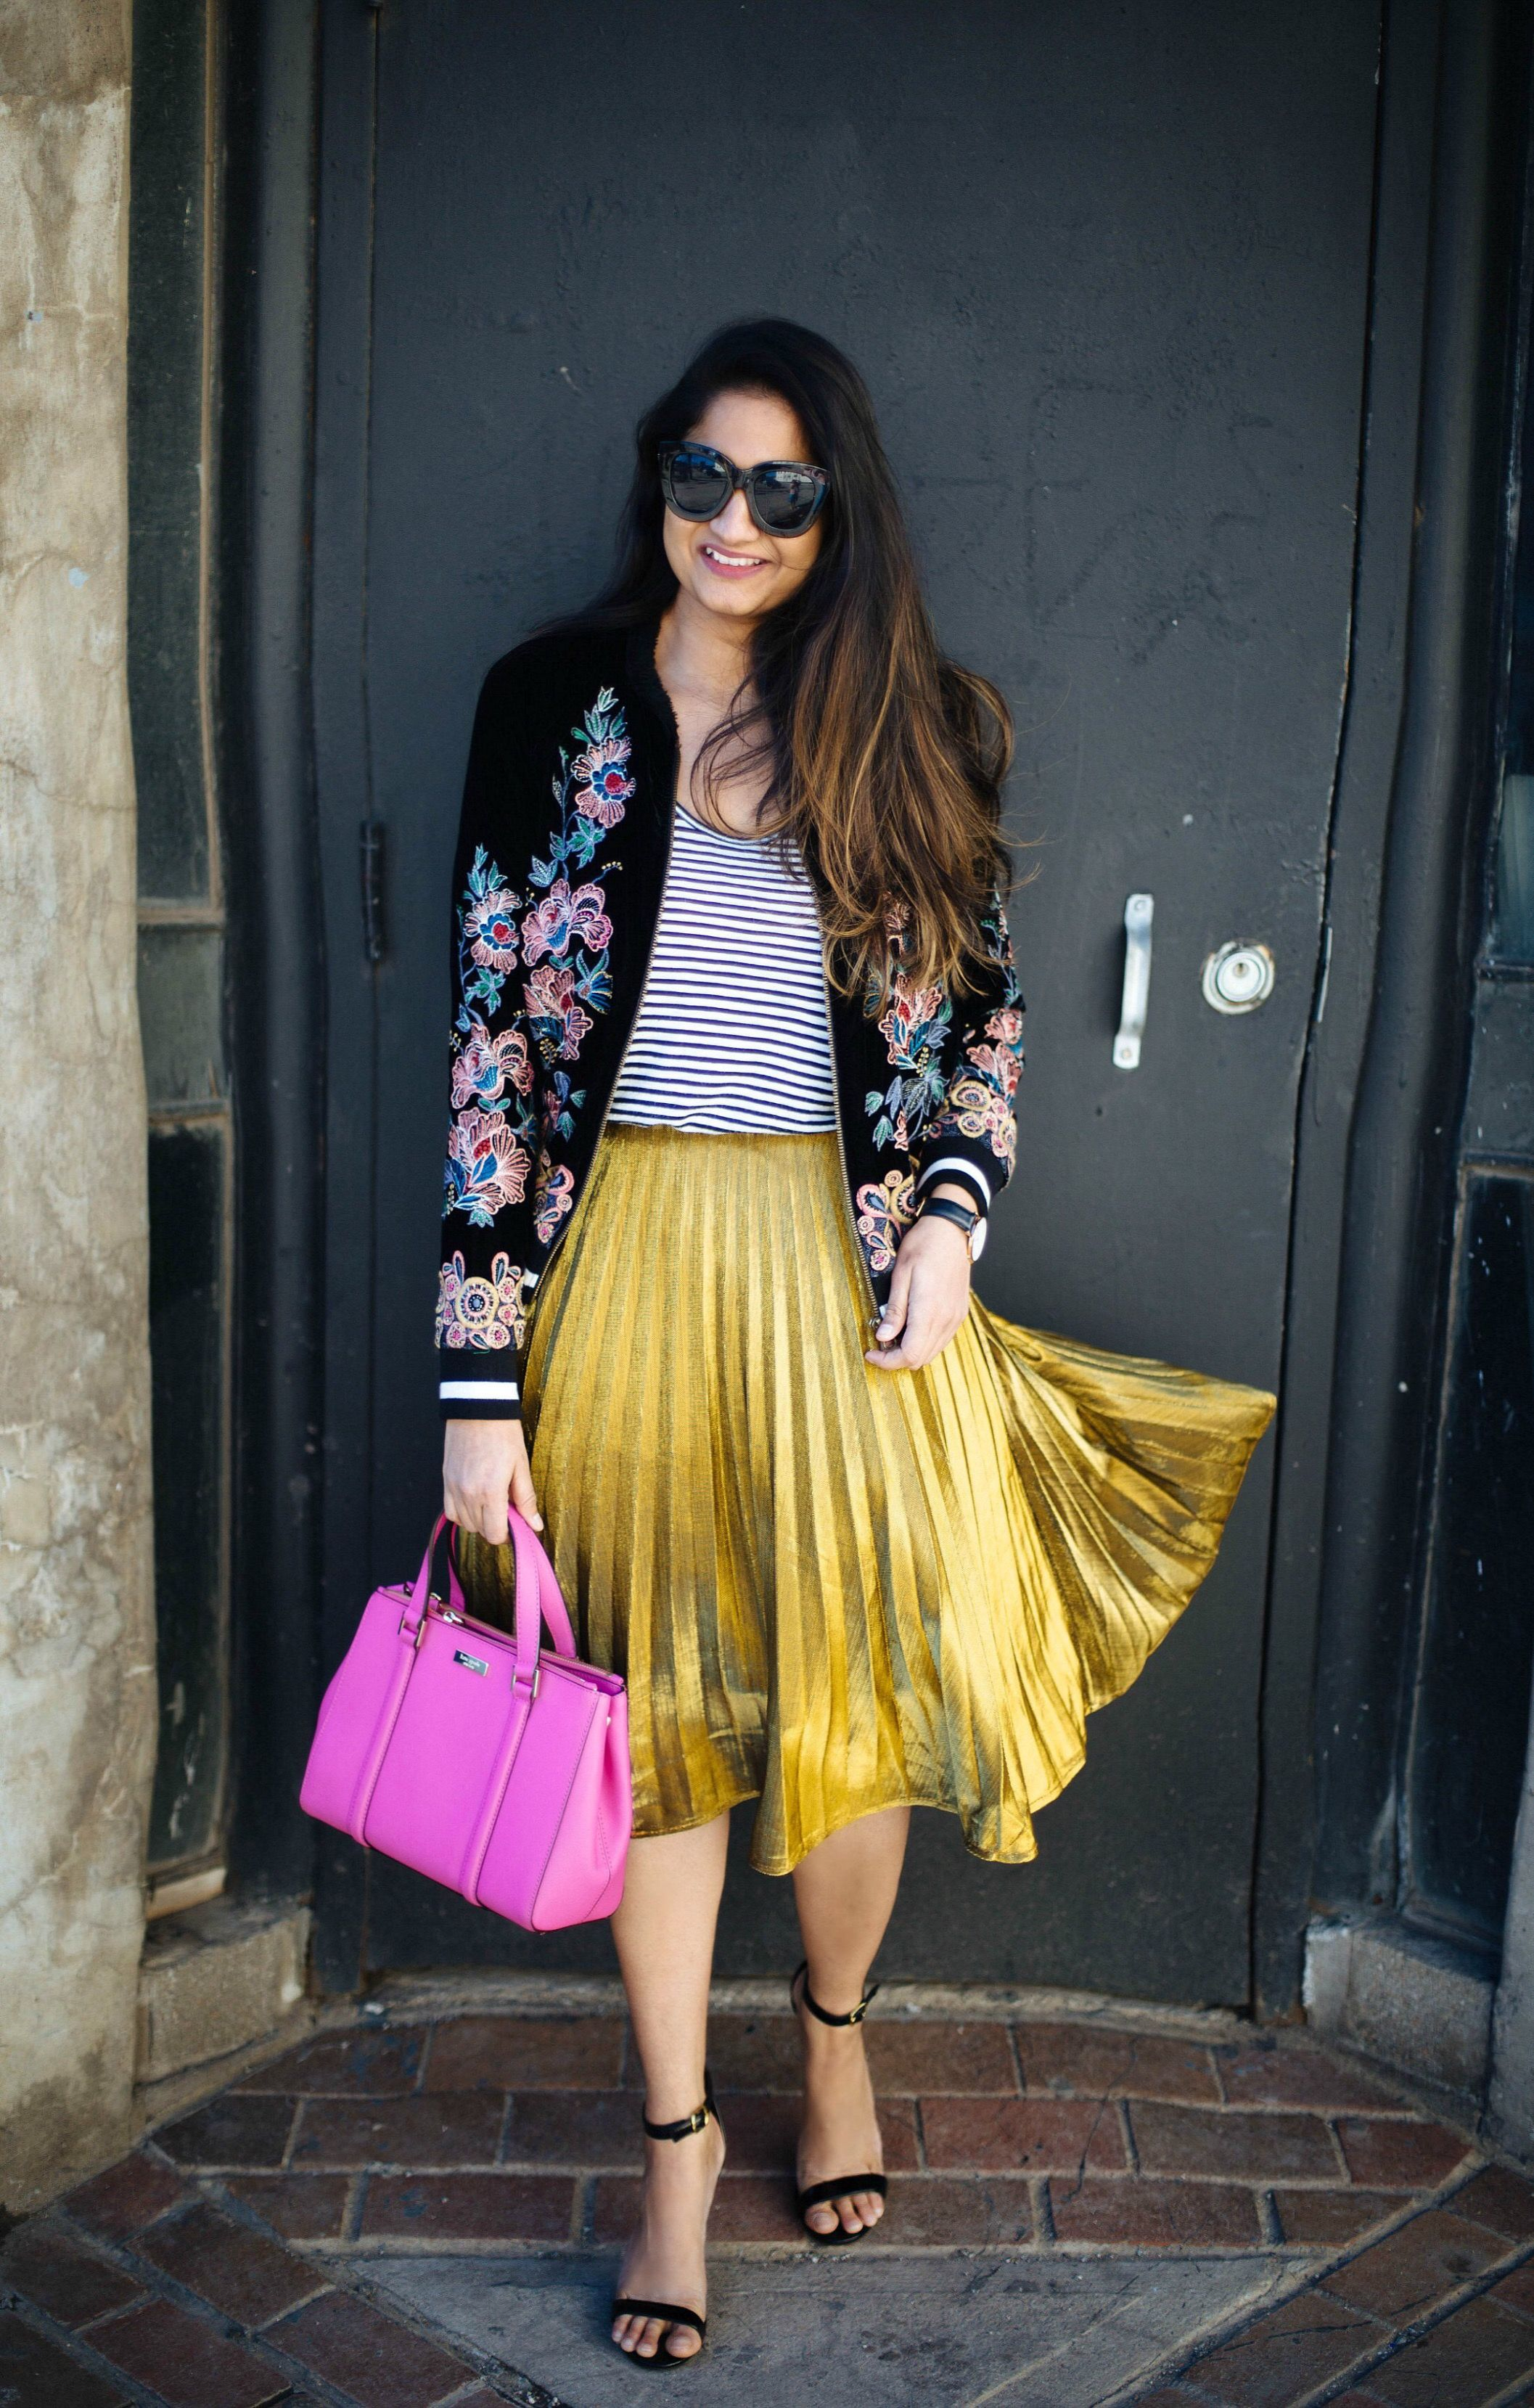 640b62f20b 2 ways to a dress up a gold pleated skirt, how to style a gold pleated skirt,  shin pleated yellow skirt, floral embroidery bomber jacket, spring outfits,  ...